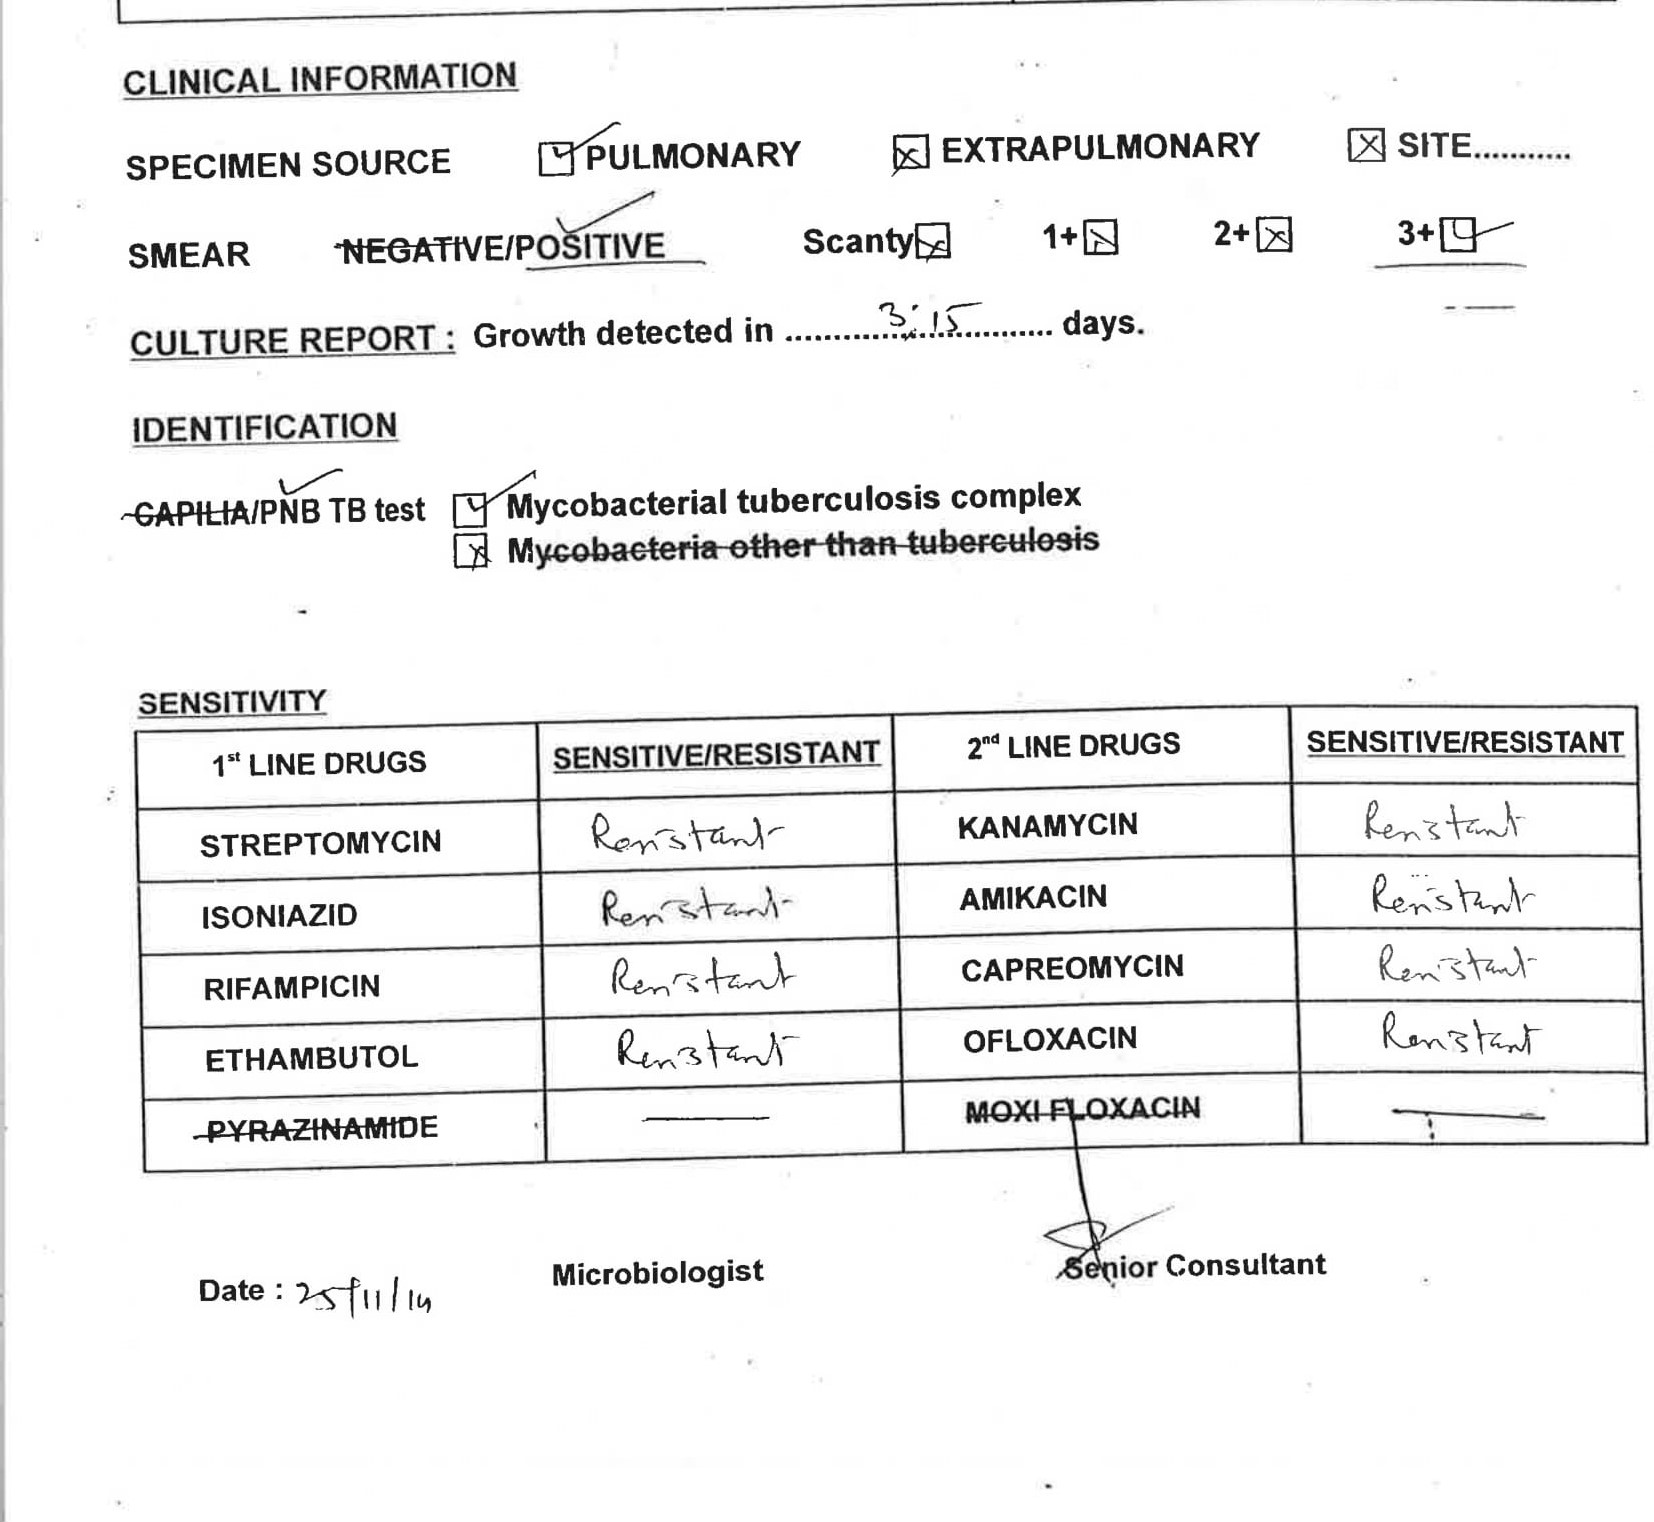 Priya's drug sensitivity test report from November 2014.